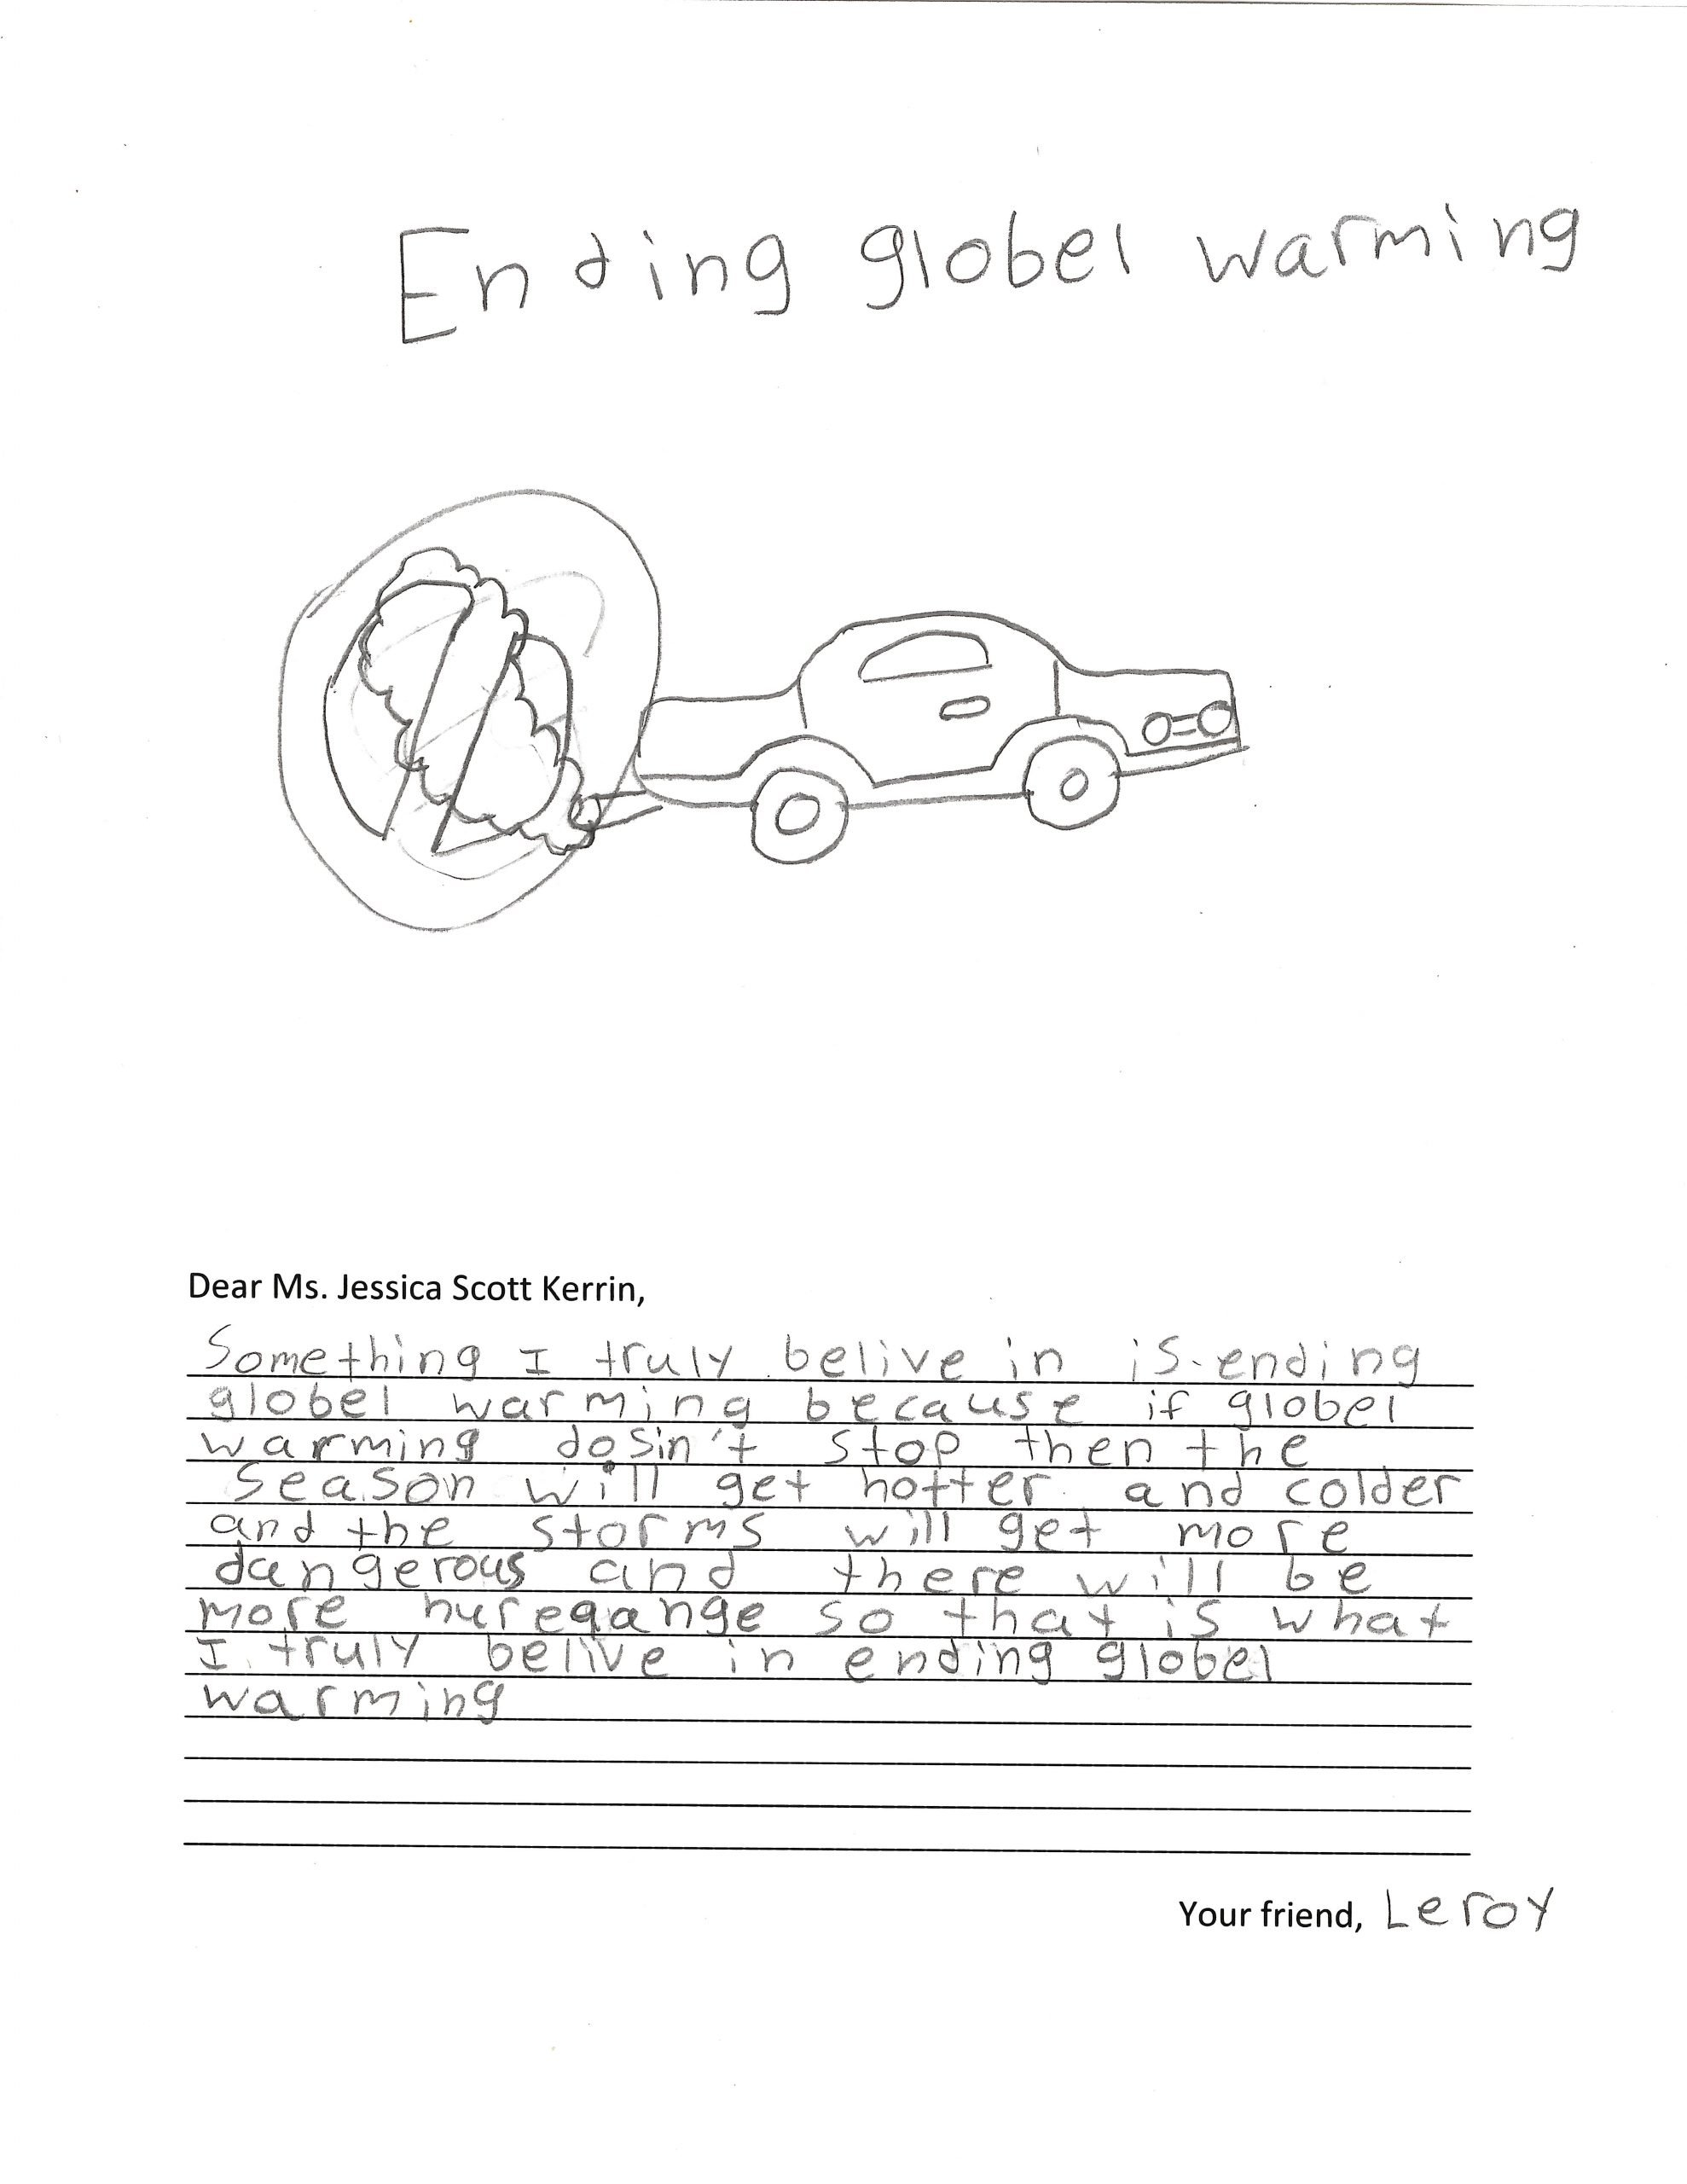 A child's drawing of car pollution